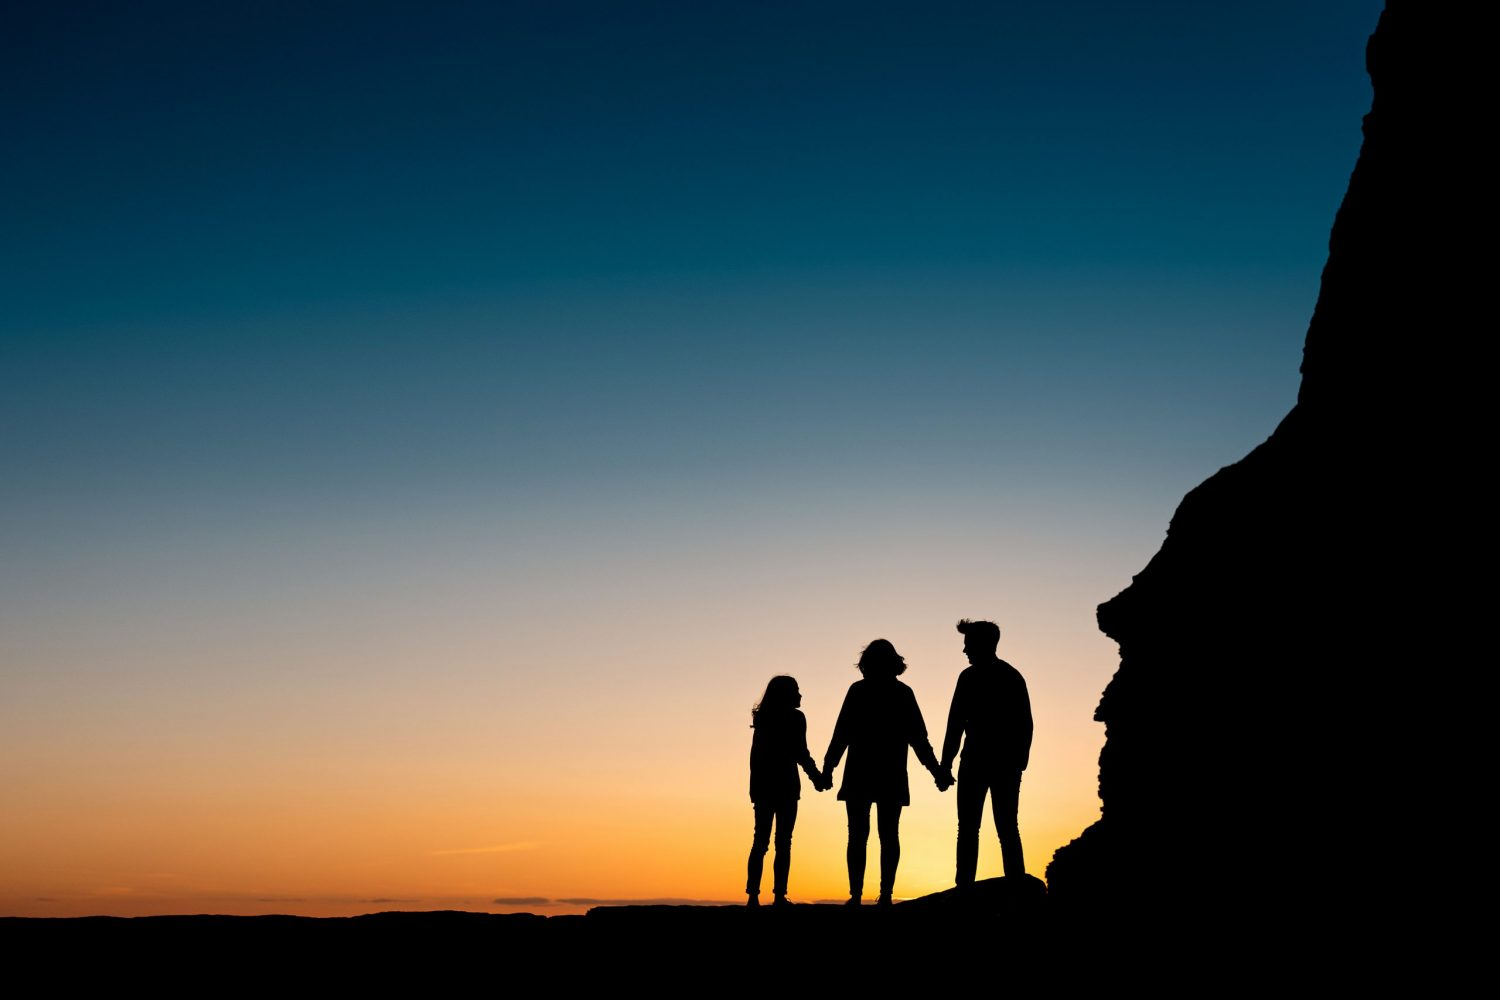 silhouette image of a family of 3 at sunset on the beach